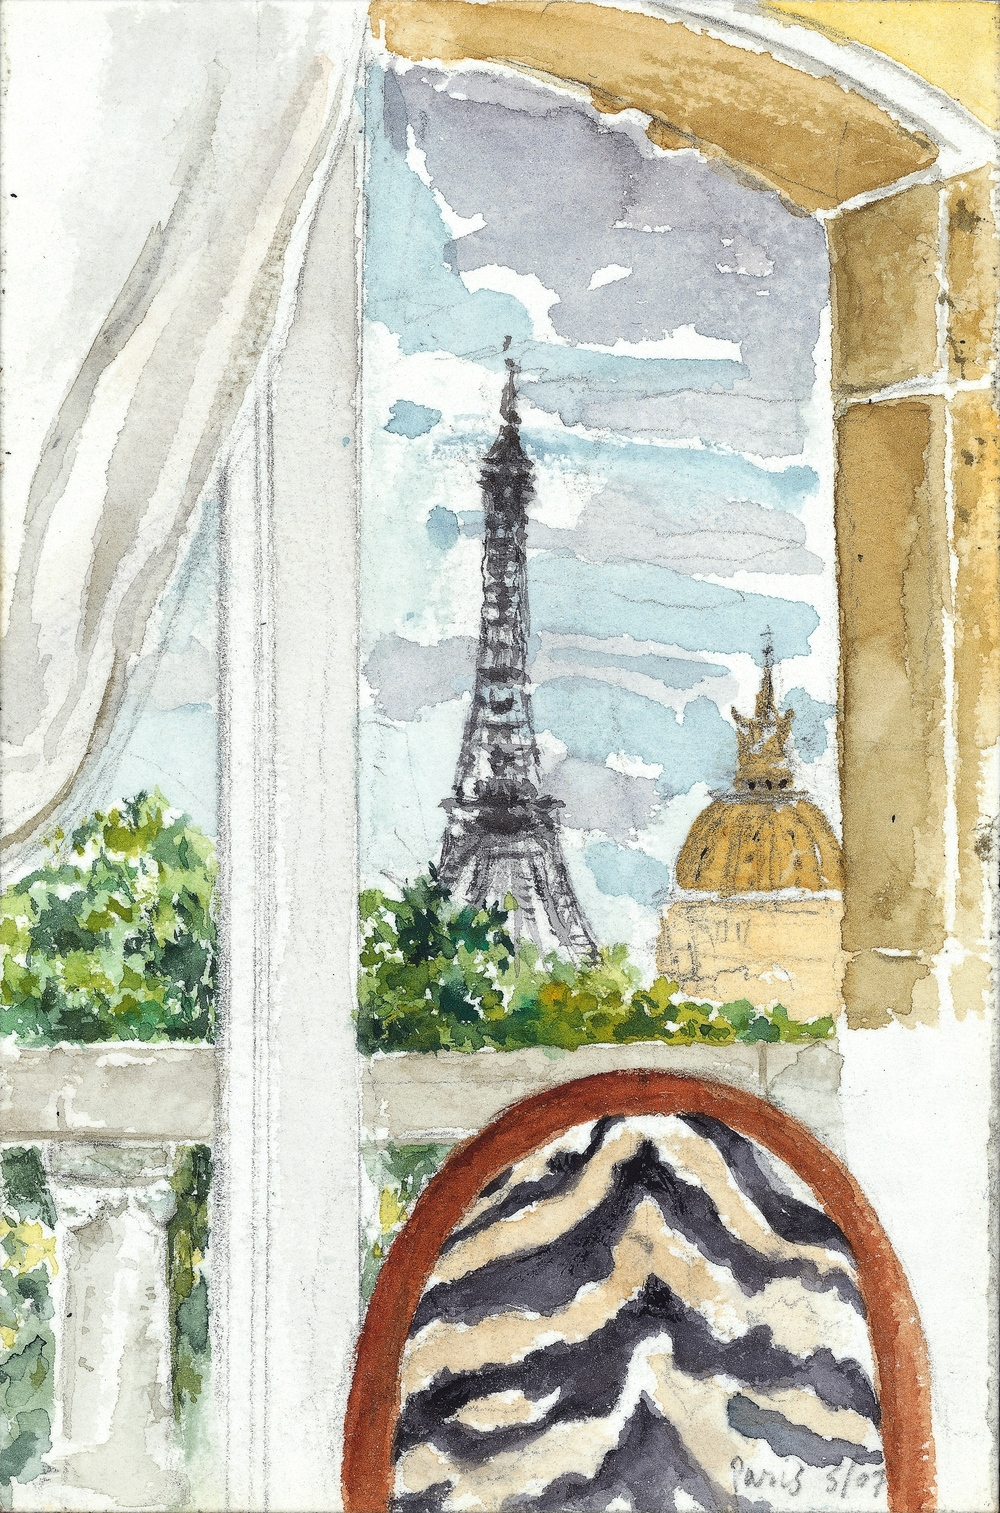 PARIS SUITE, WATERCOLOR